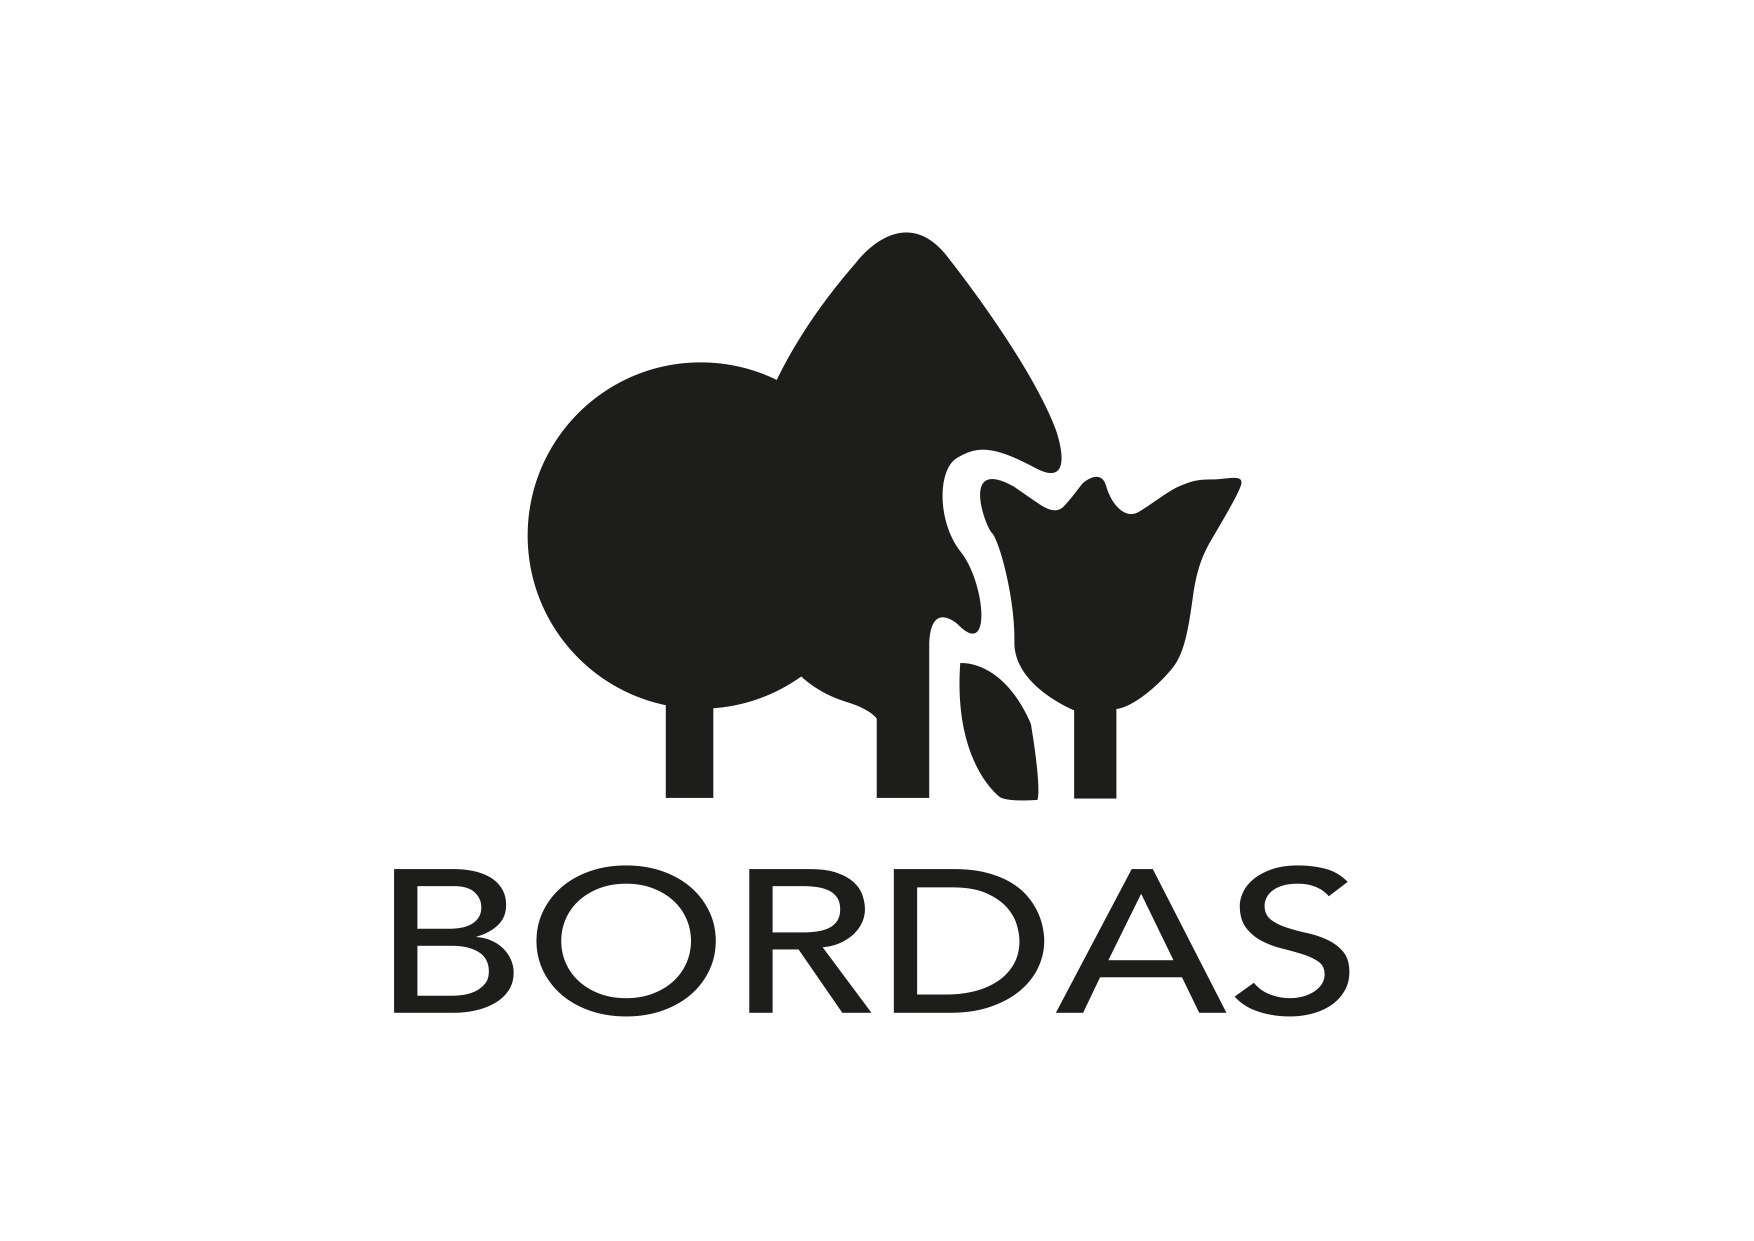 Bordas_page-0001